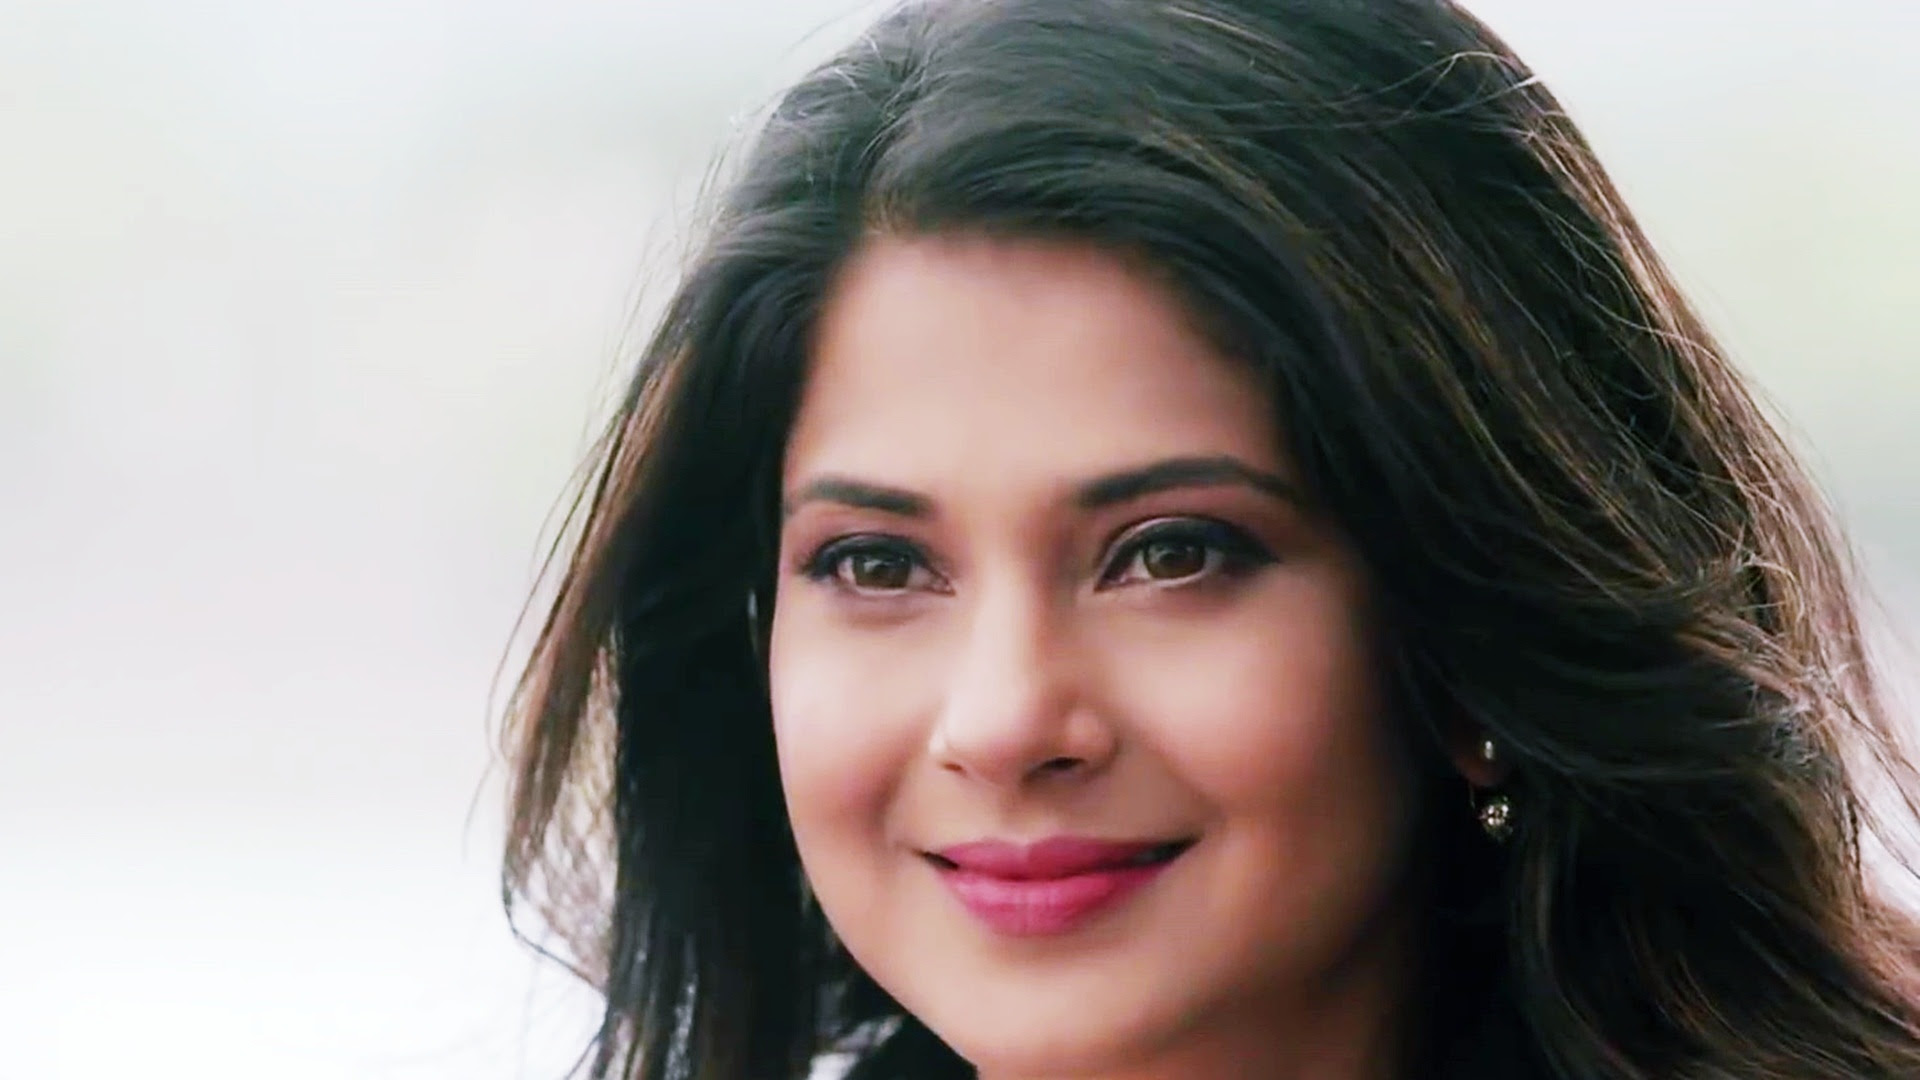 Beyhadh Wallpapers Hd Backgrounds Images Pics Photos Free